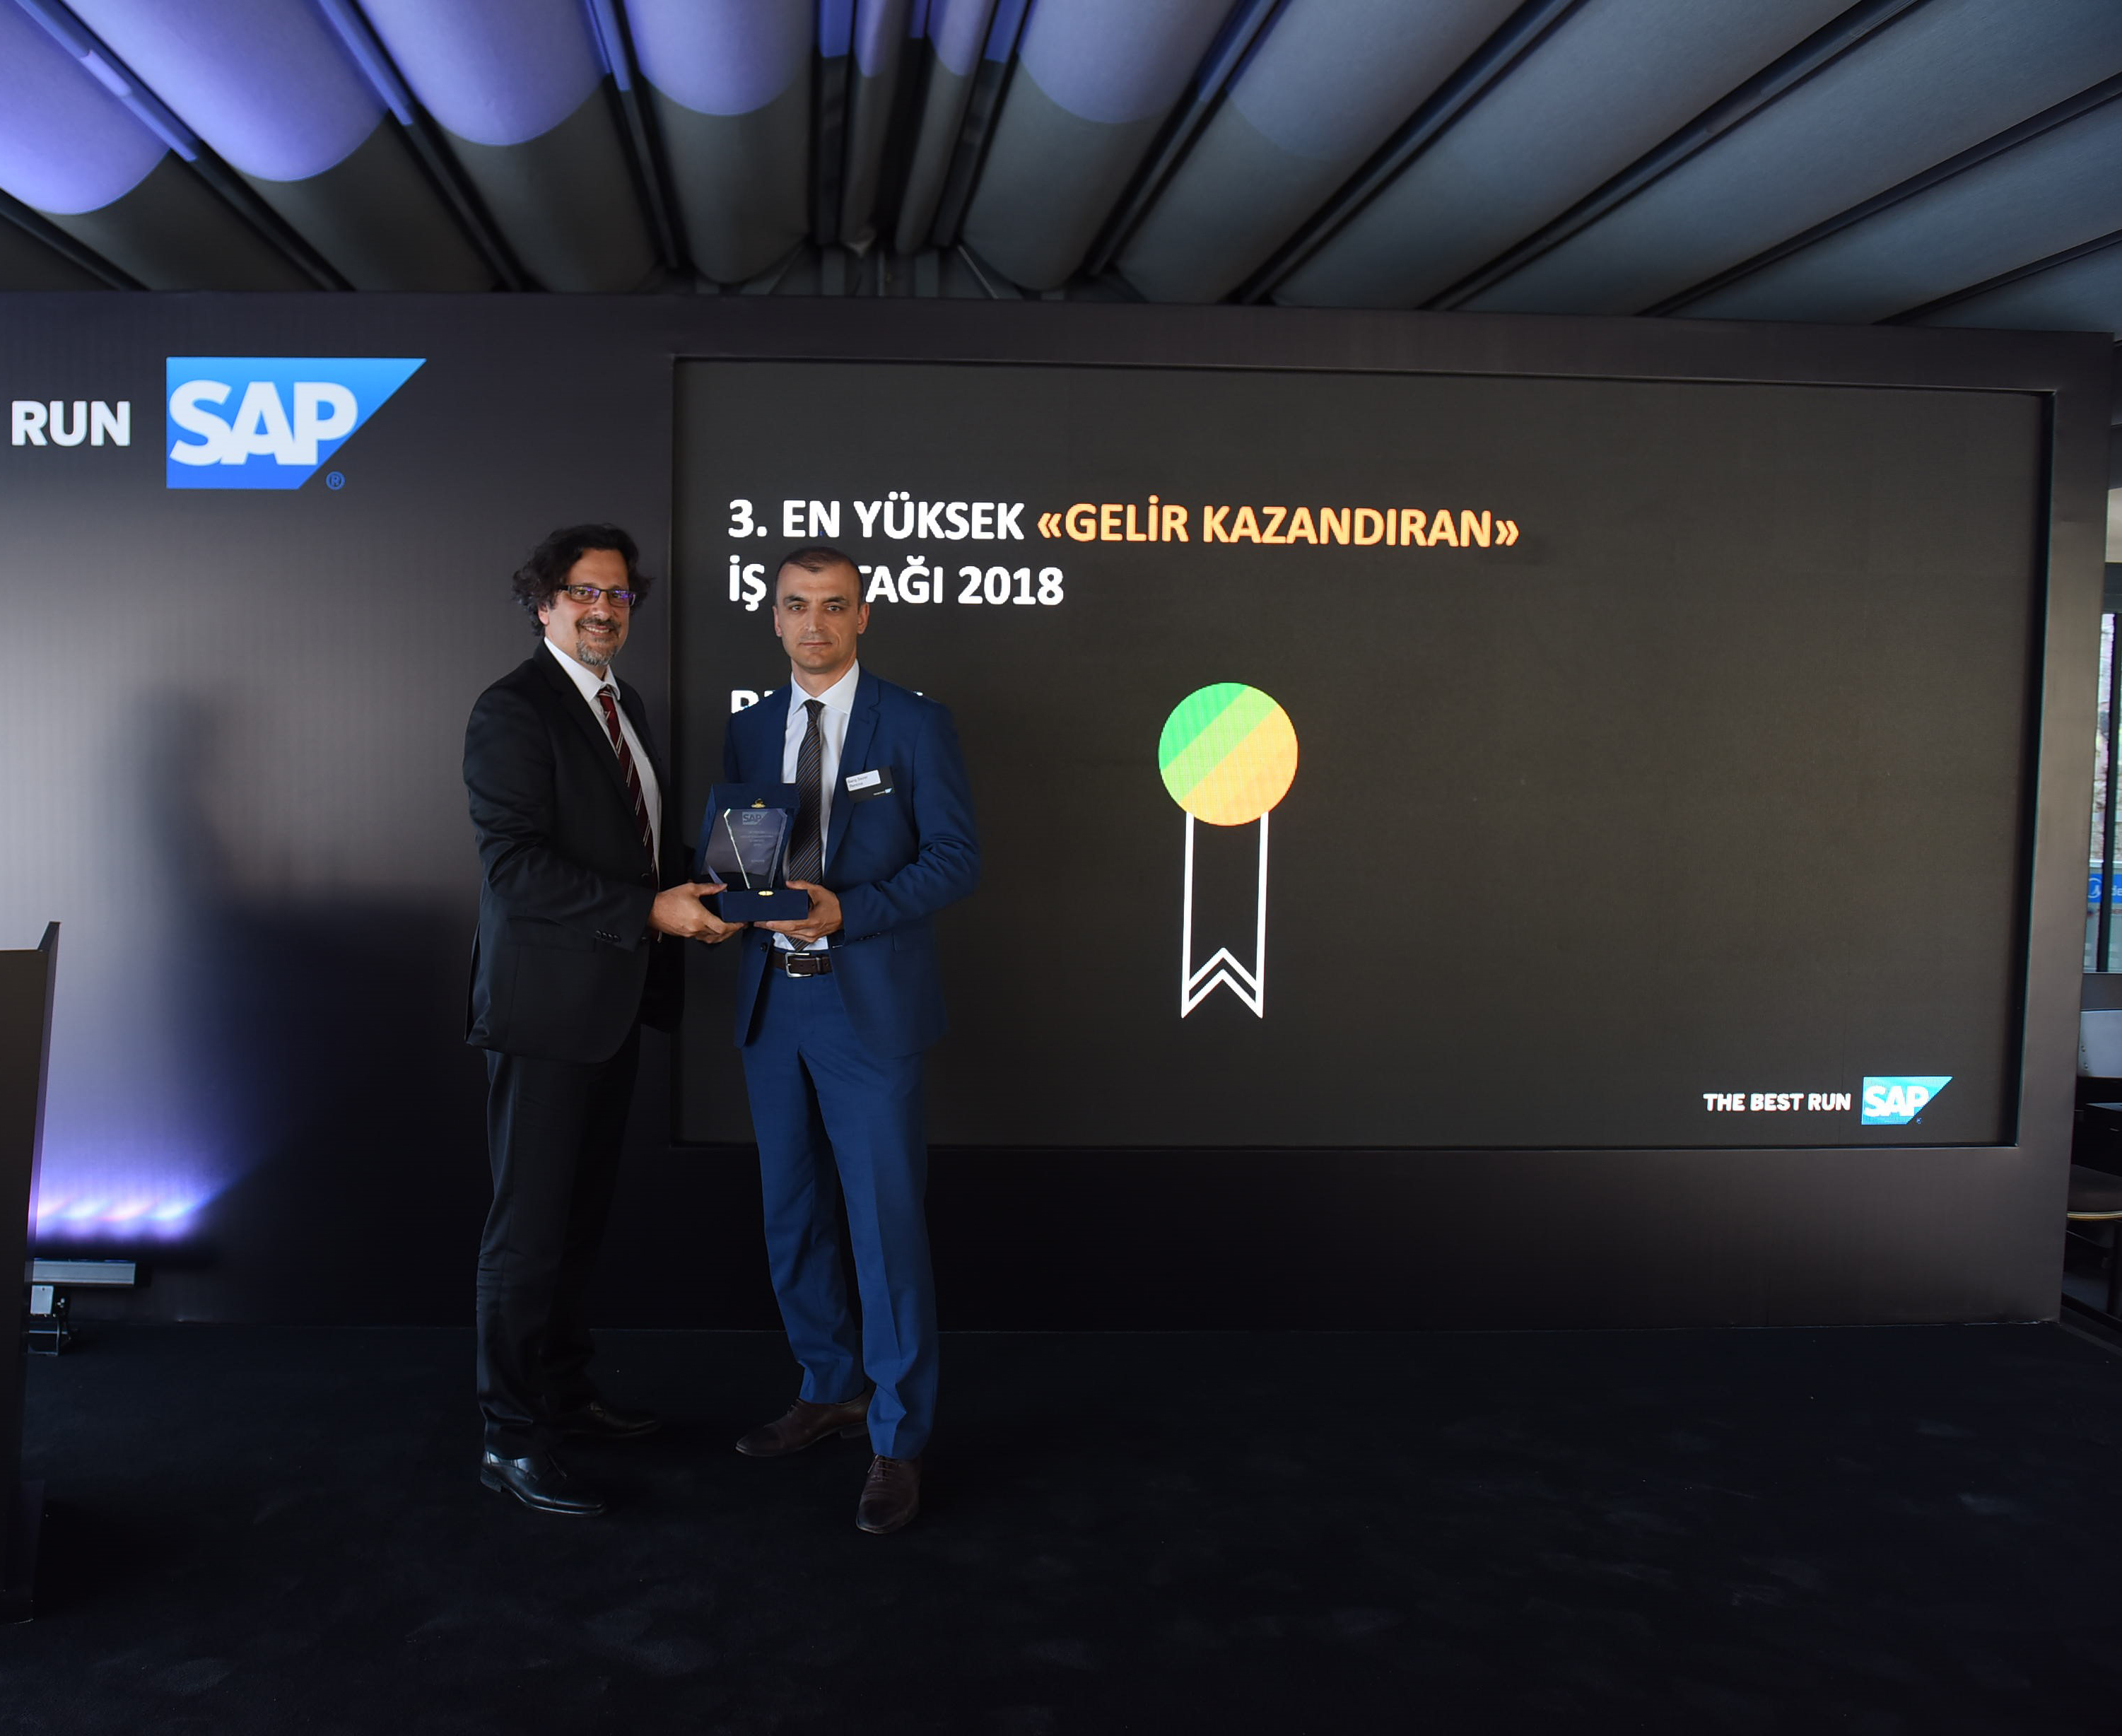 Highest Revenue Earning SAP Business Partner